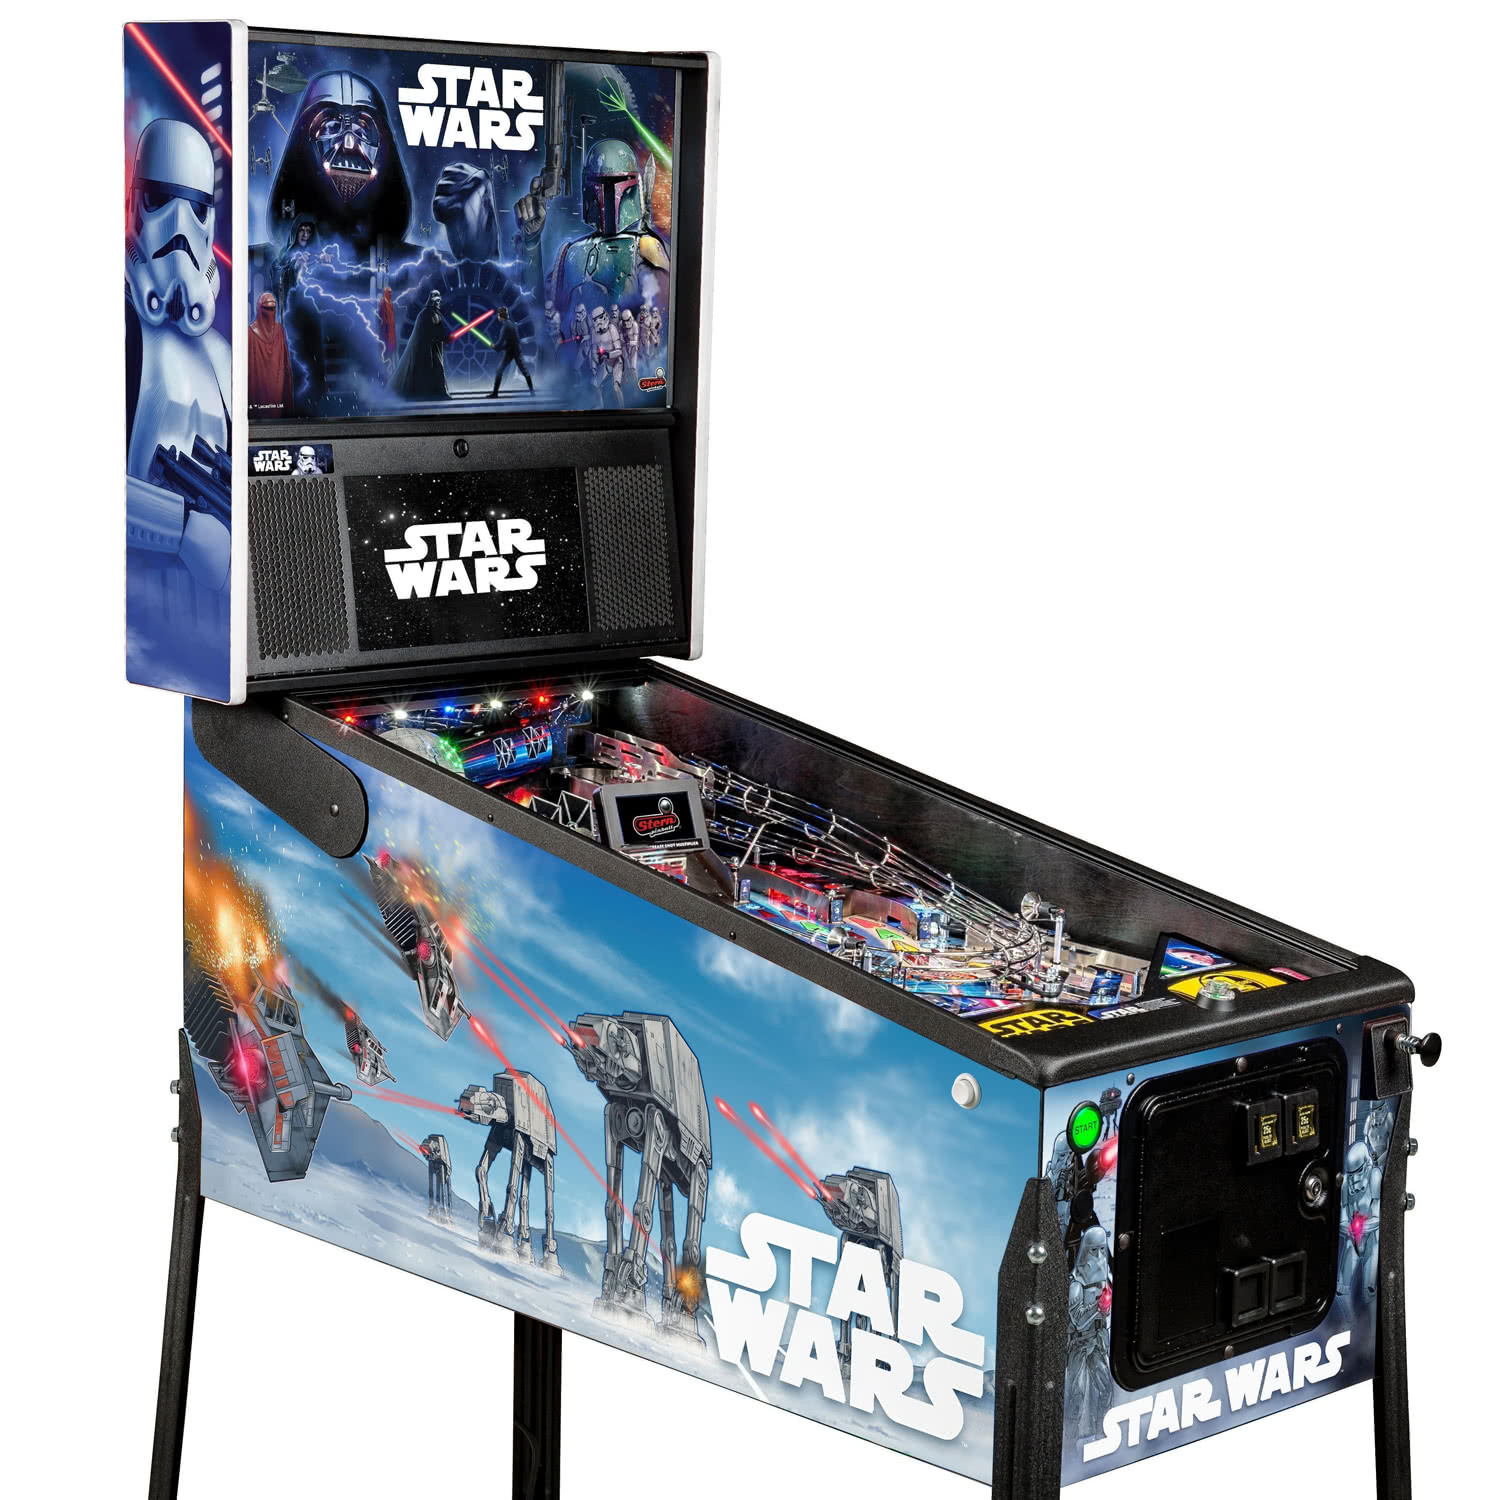 Star Wars Pinball Machine >> Stern Star Wars Premium Pinball Machine Liberty Games